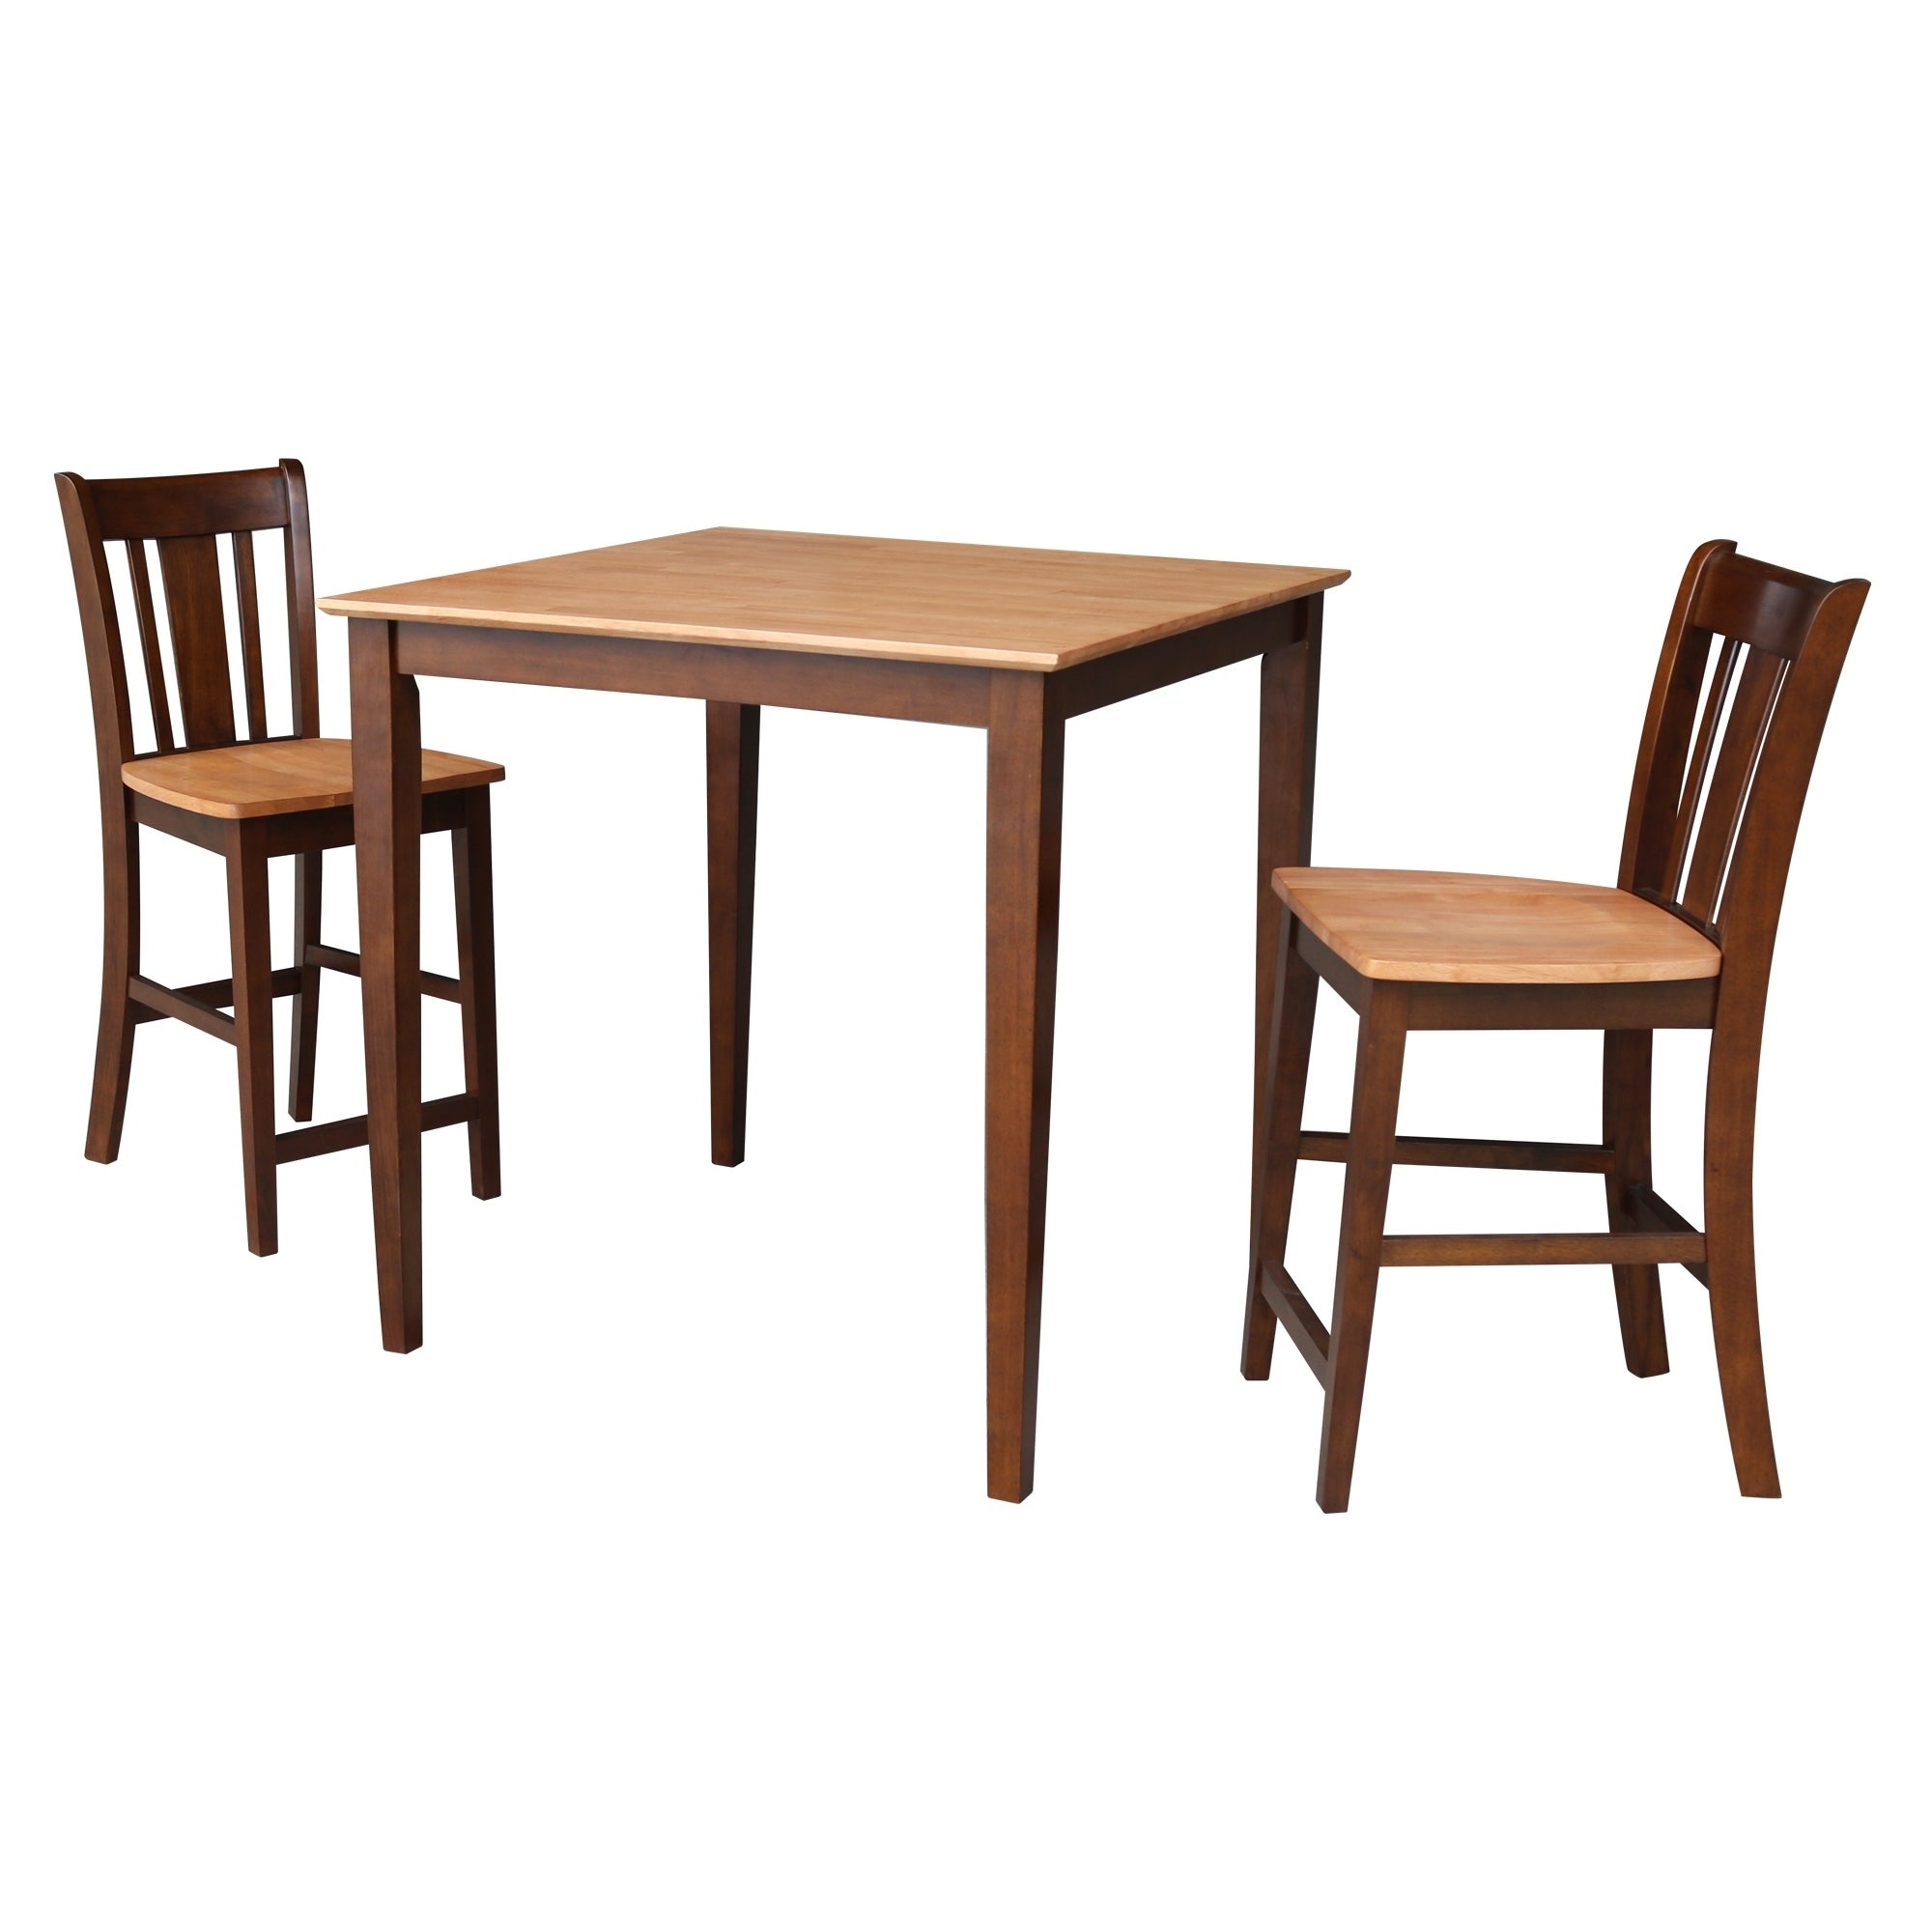 Shop 36x36 Counter Height Dining Table With 2 Counter Height Stools In Cinnamon Espresso On Sale Overstock 25738224